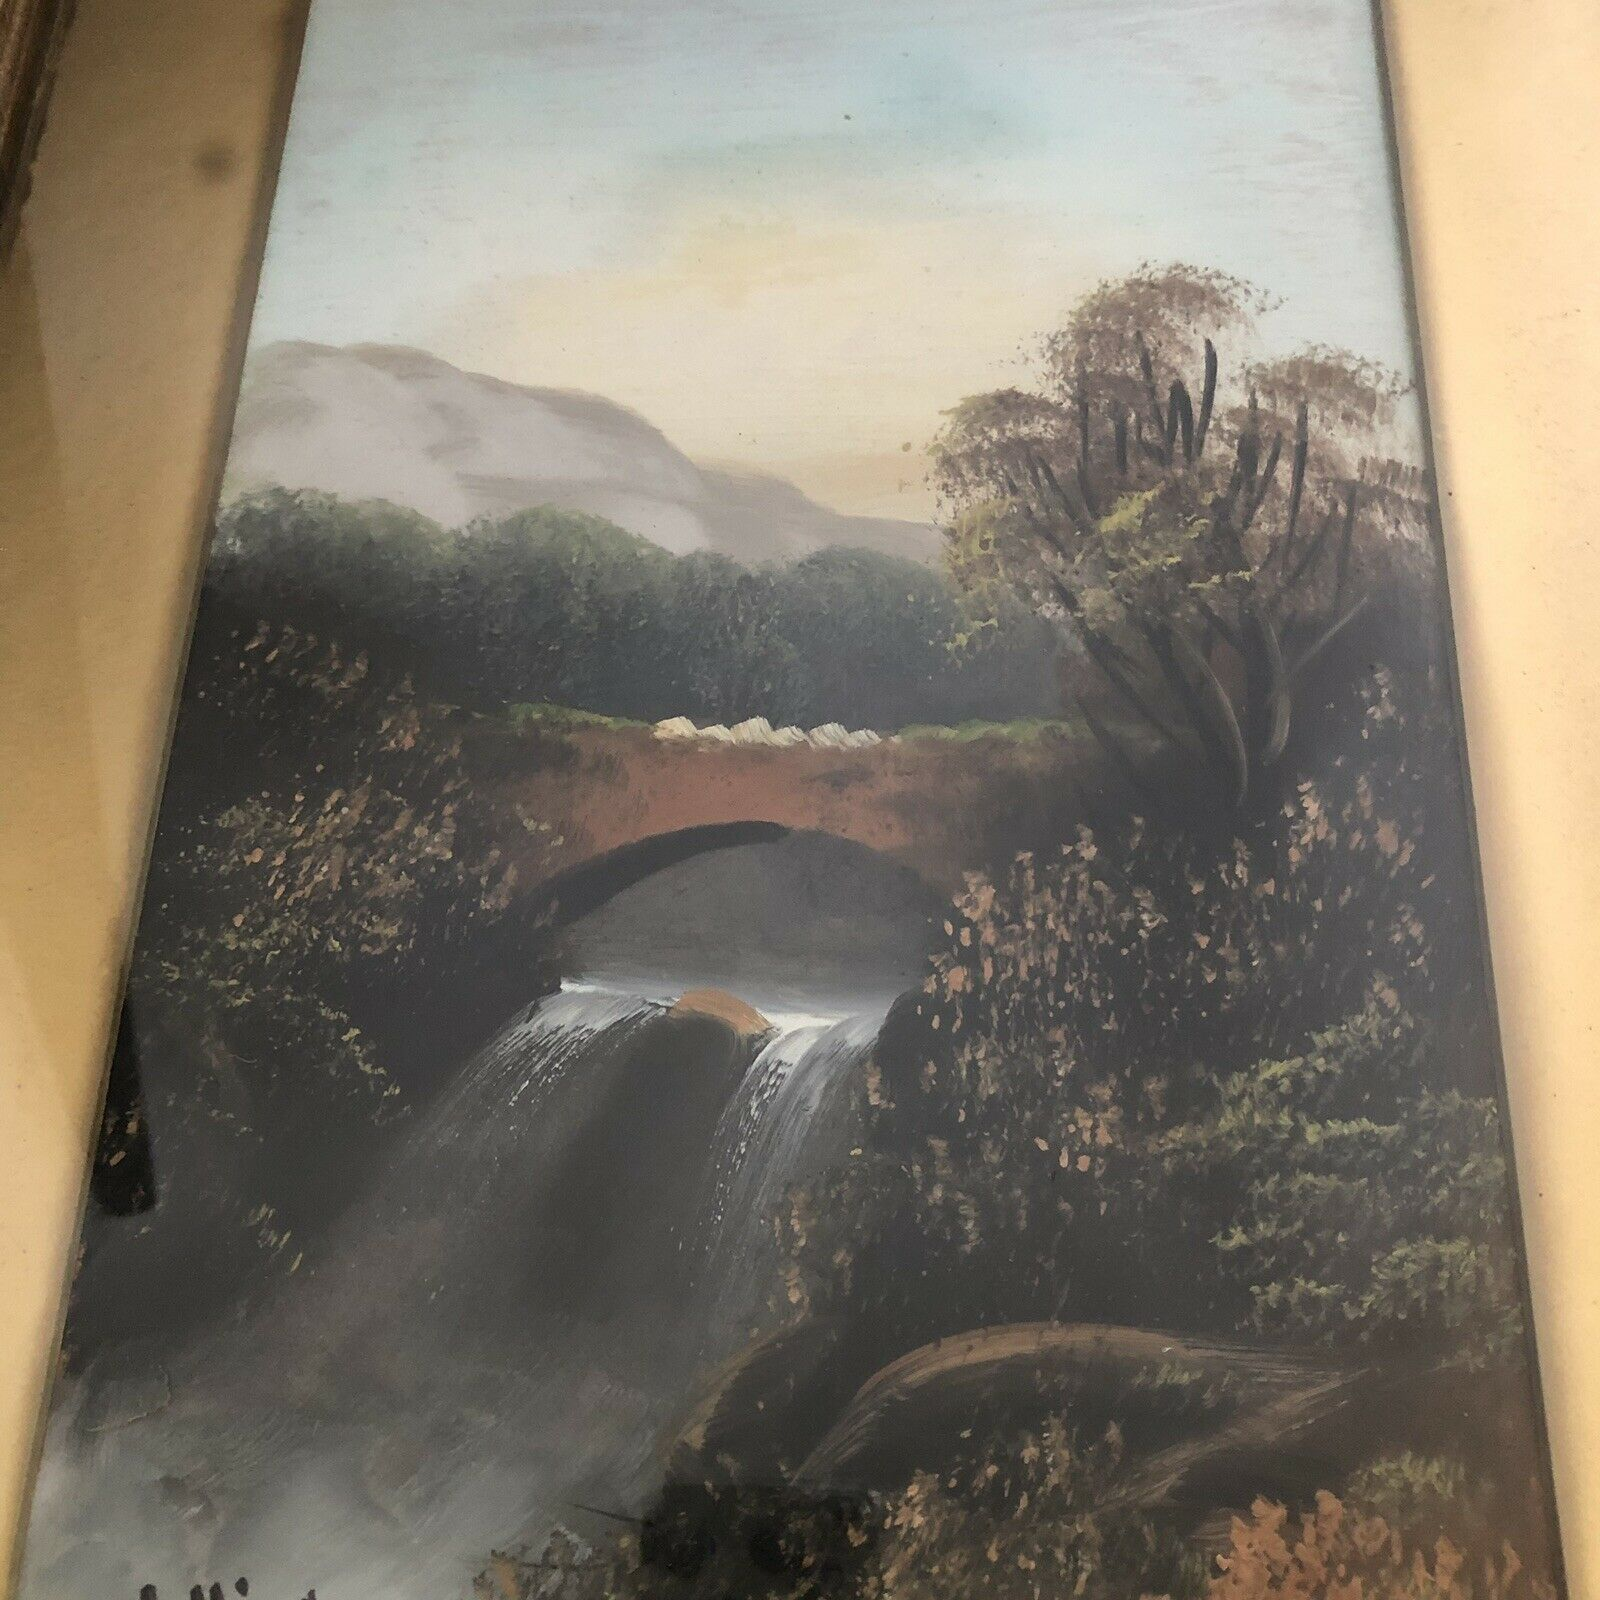 Lot 47 - Original Signed Antique 19th C. Oil on Board Painting Signed W COLLINS Waterfall